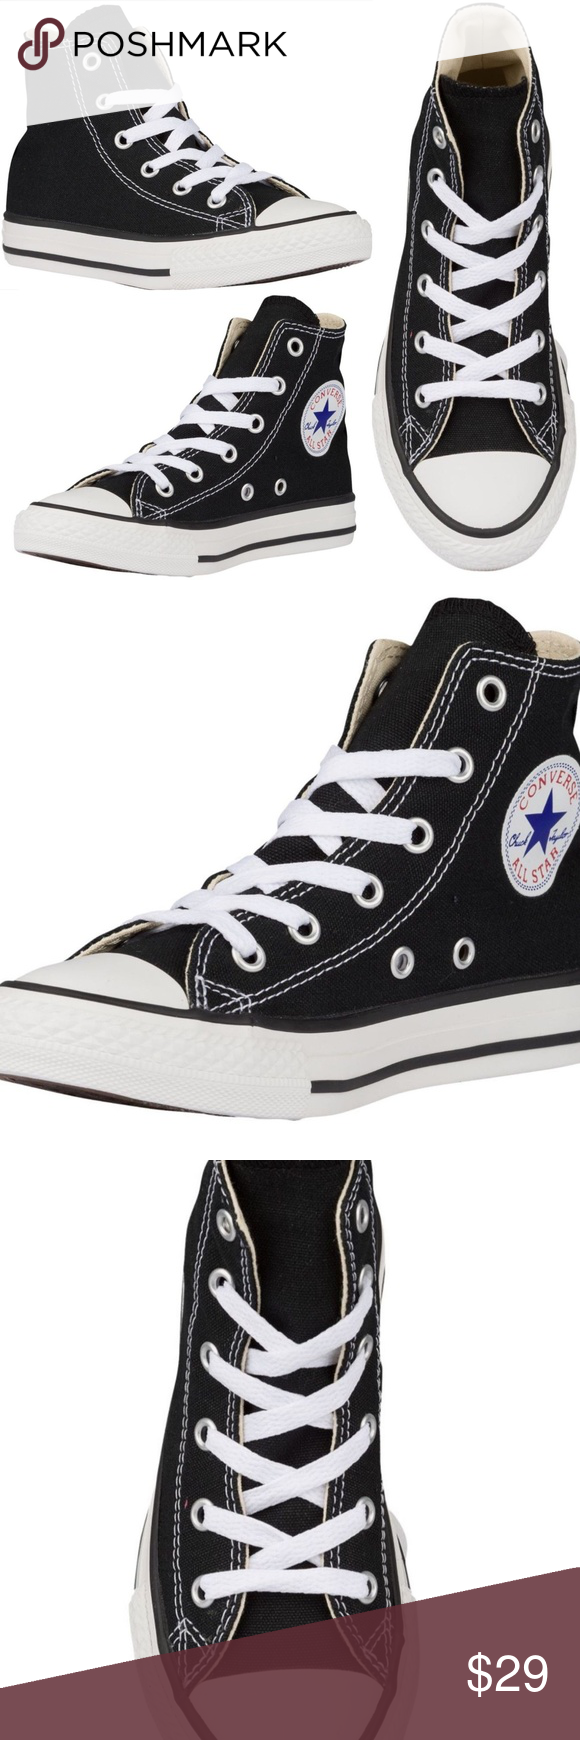 c5be43d4c845 CONVERSE Kids ALL STAR Chuck Taylor HI Sneakers Even little ones need their  own  Chucks